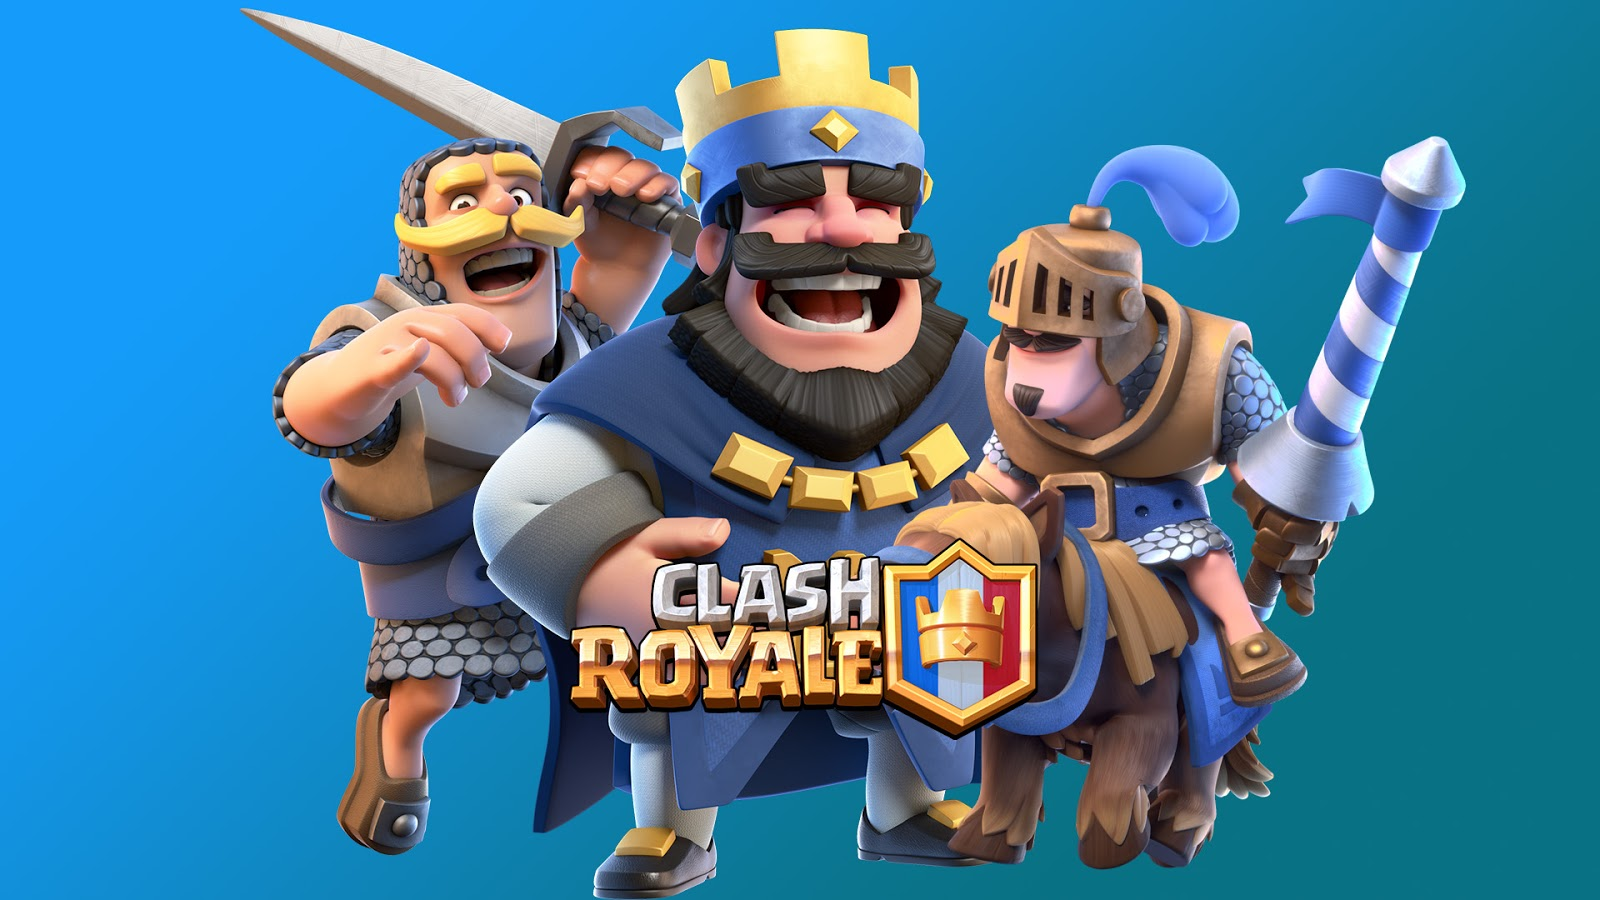 gambar clash royale hd